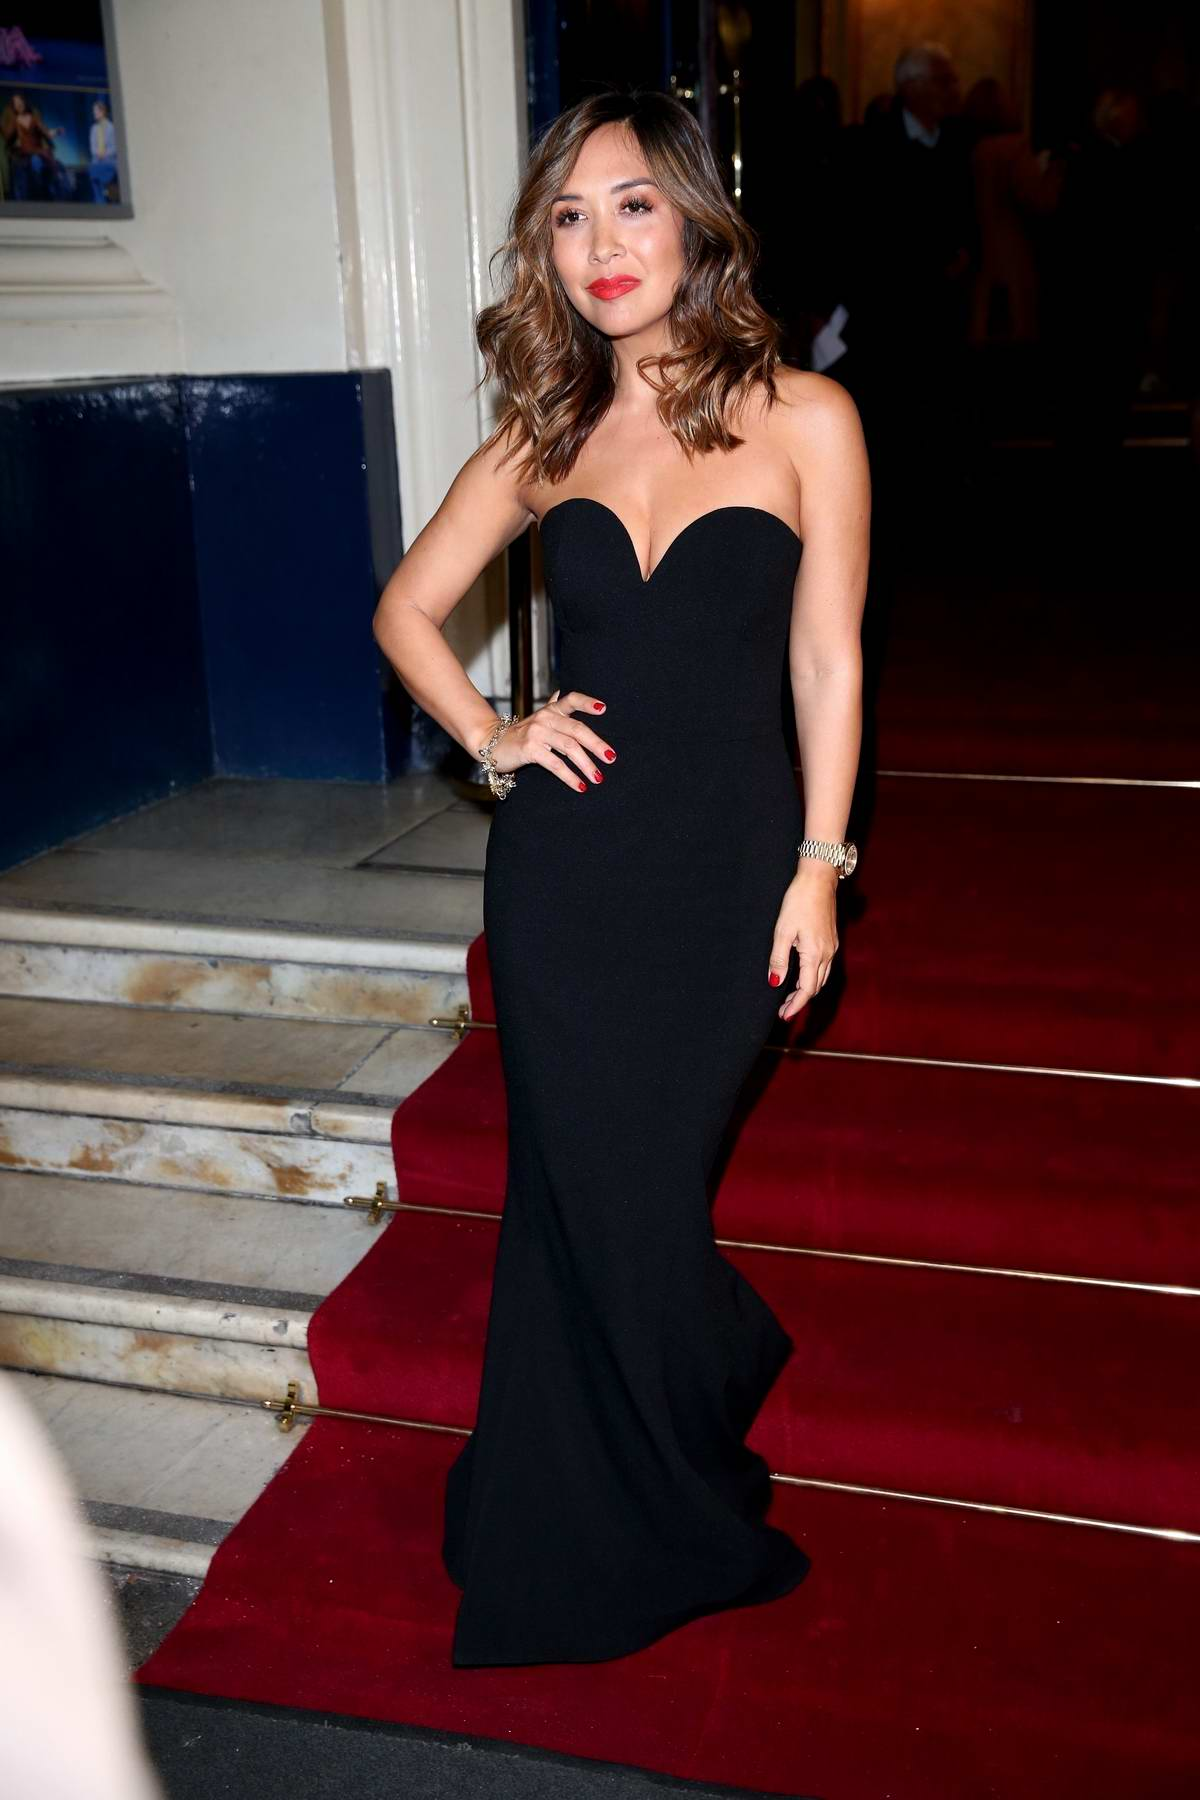 Myleene Klass attends Time Flies Royal Charity Gala at Theatre Royal, Drury Lane in London, UK